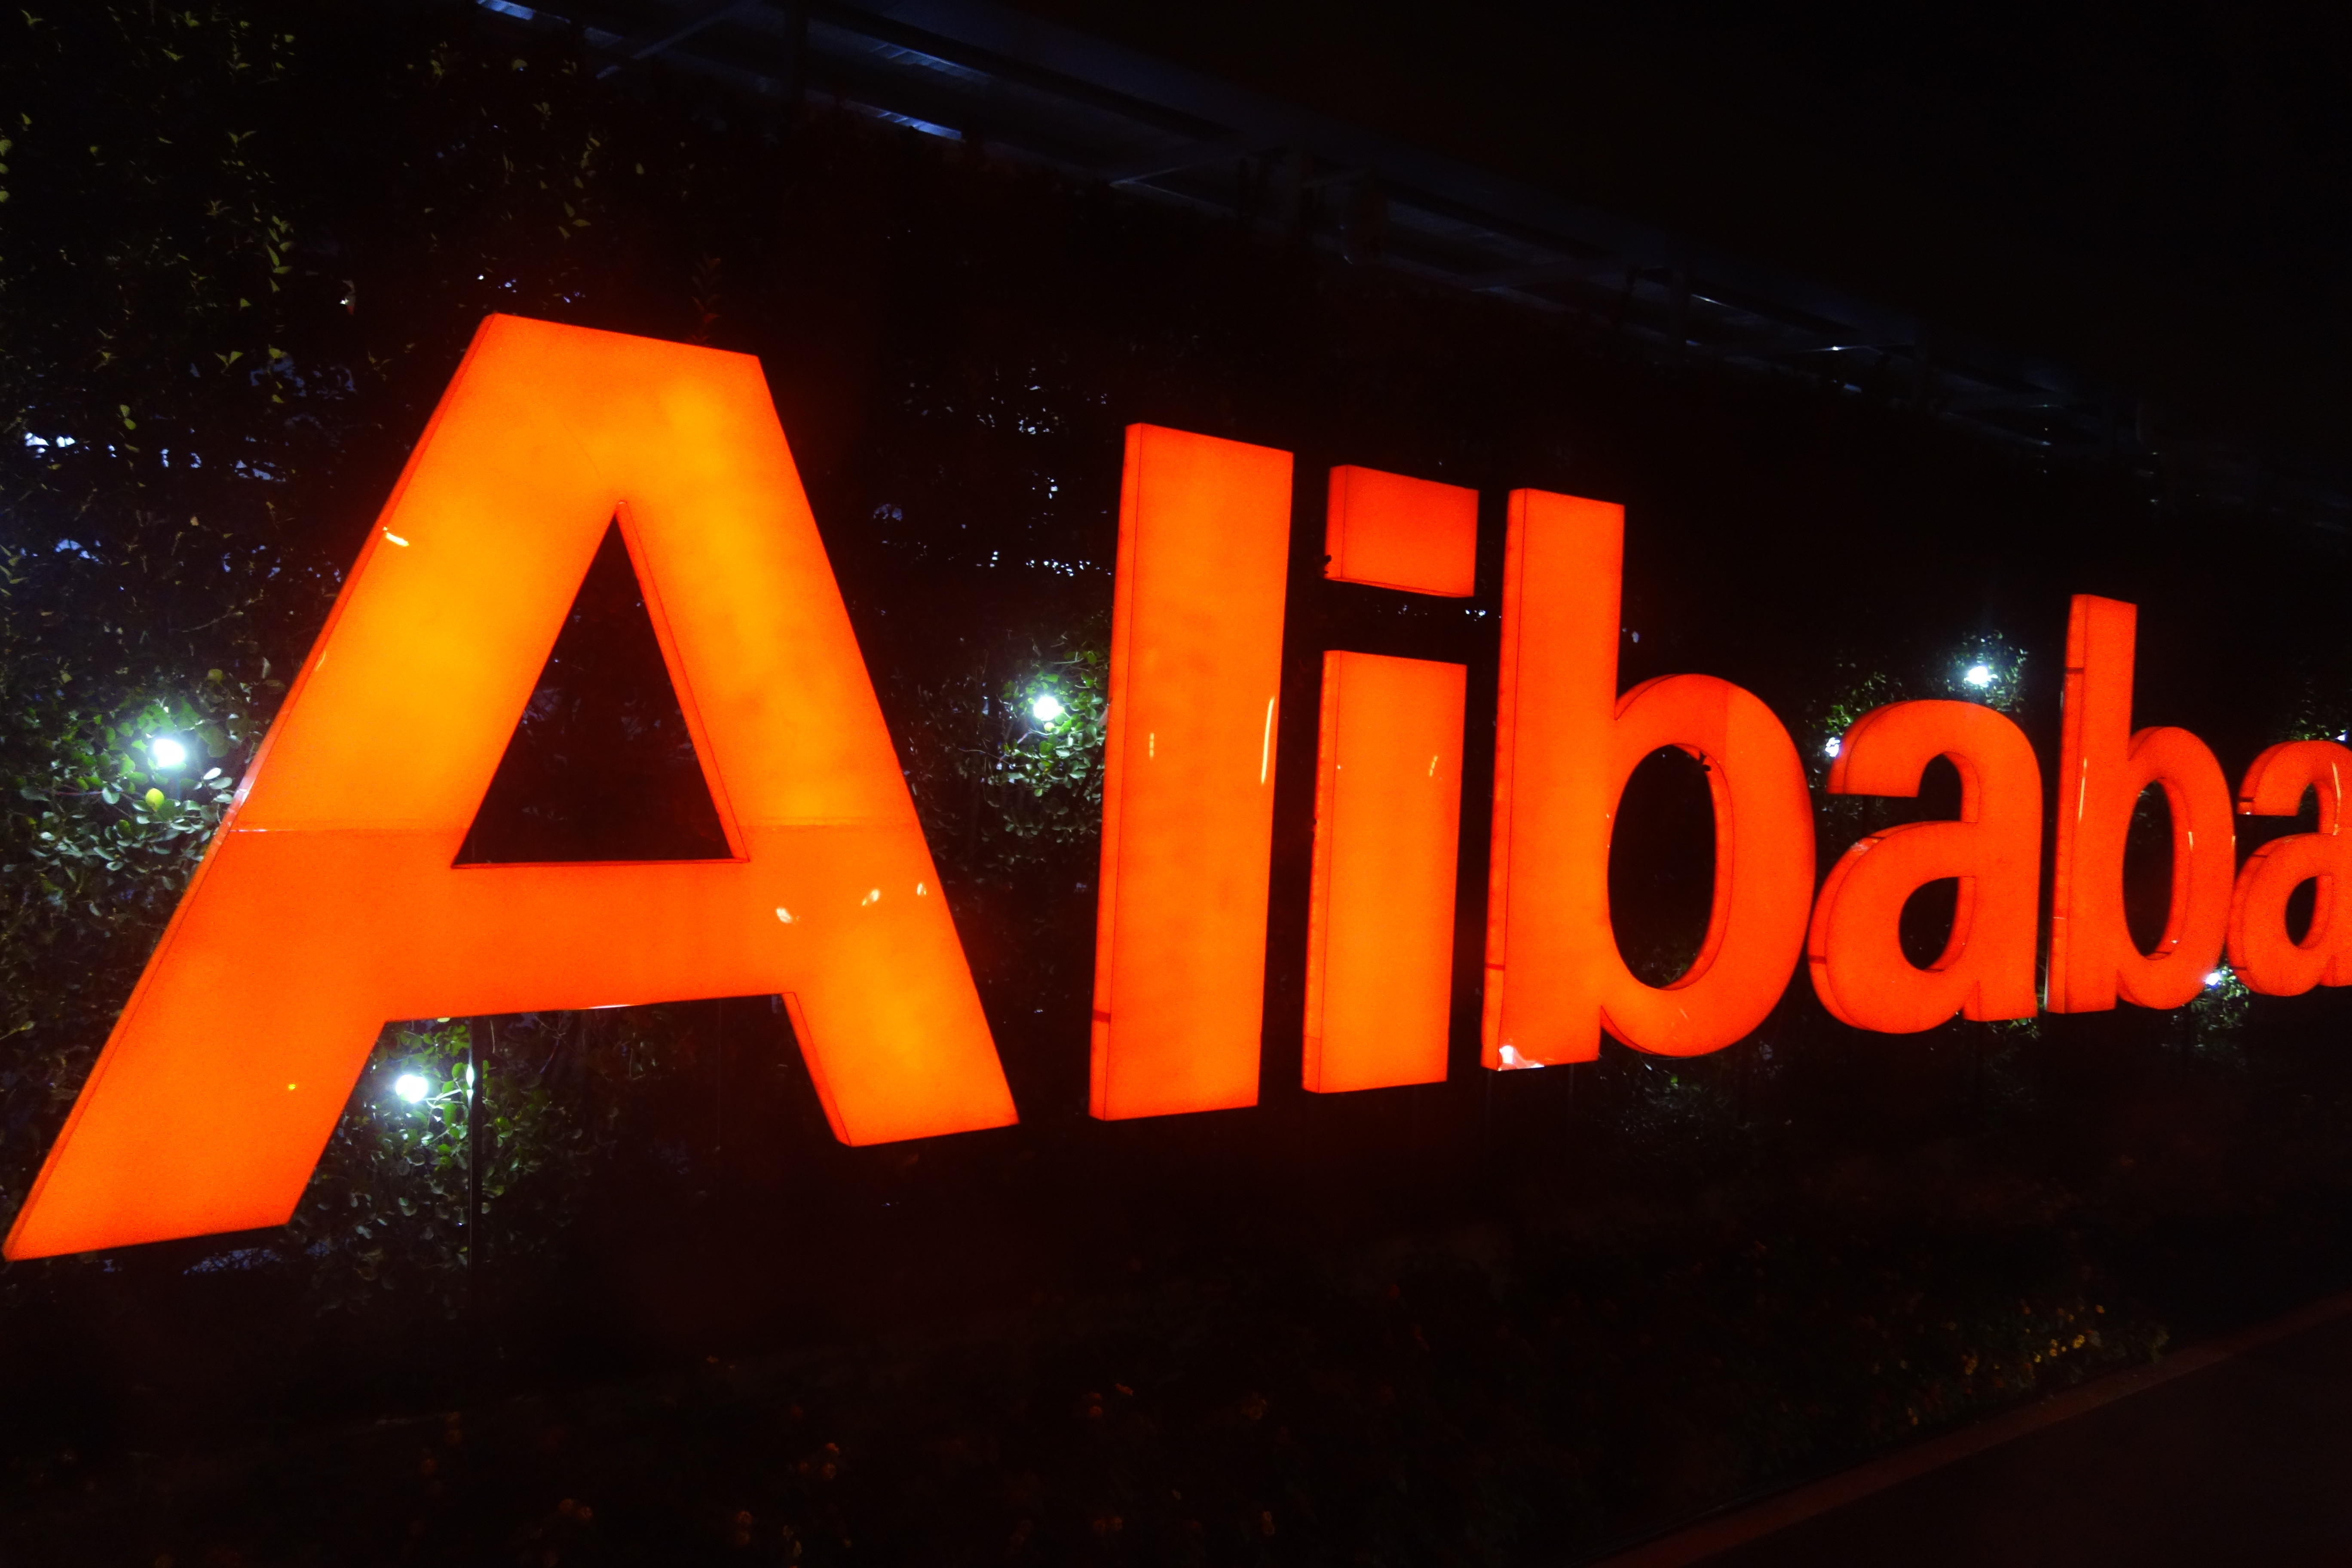 Alibaba Group (NYSE:BABA) Rating Reiterated by MKM Partners